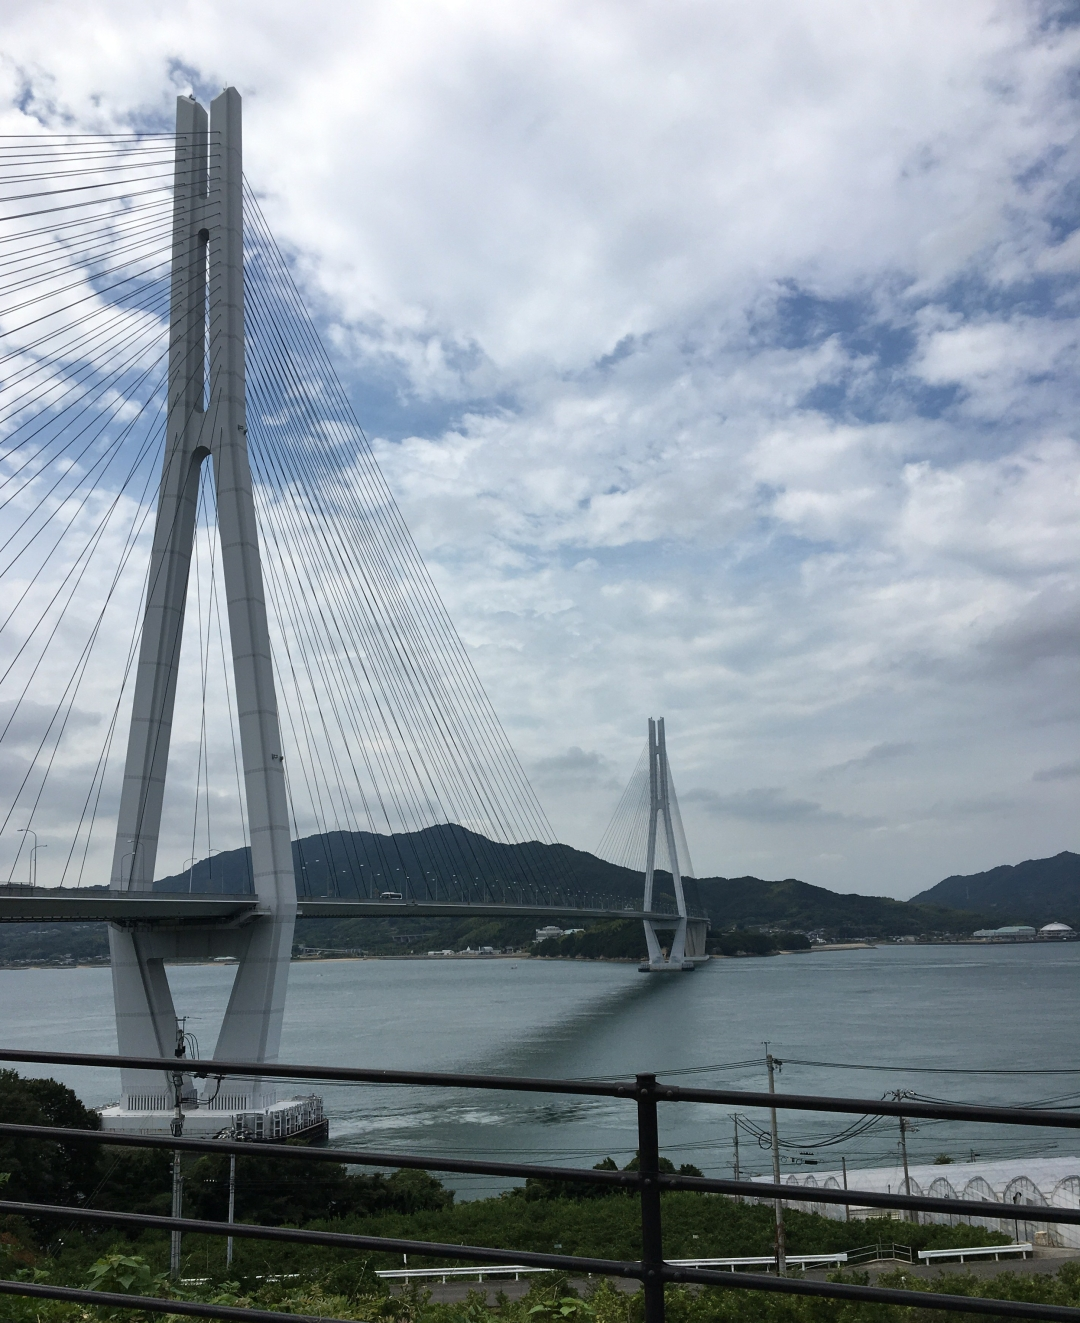 Shimanami Bridge